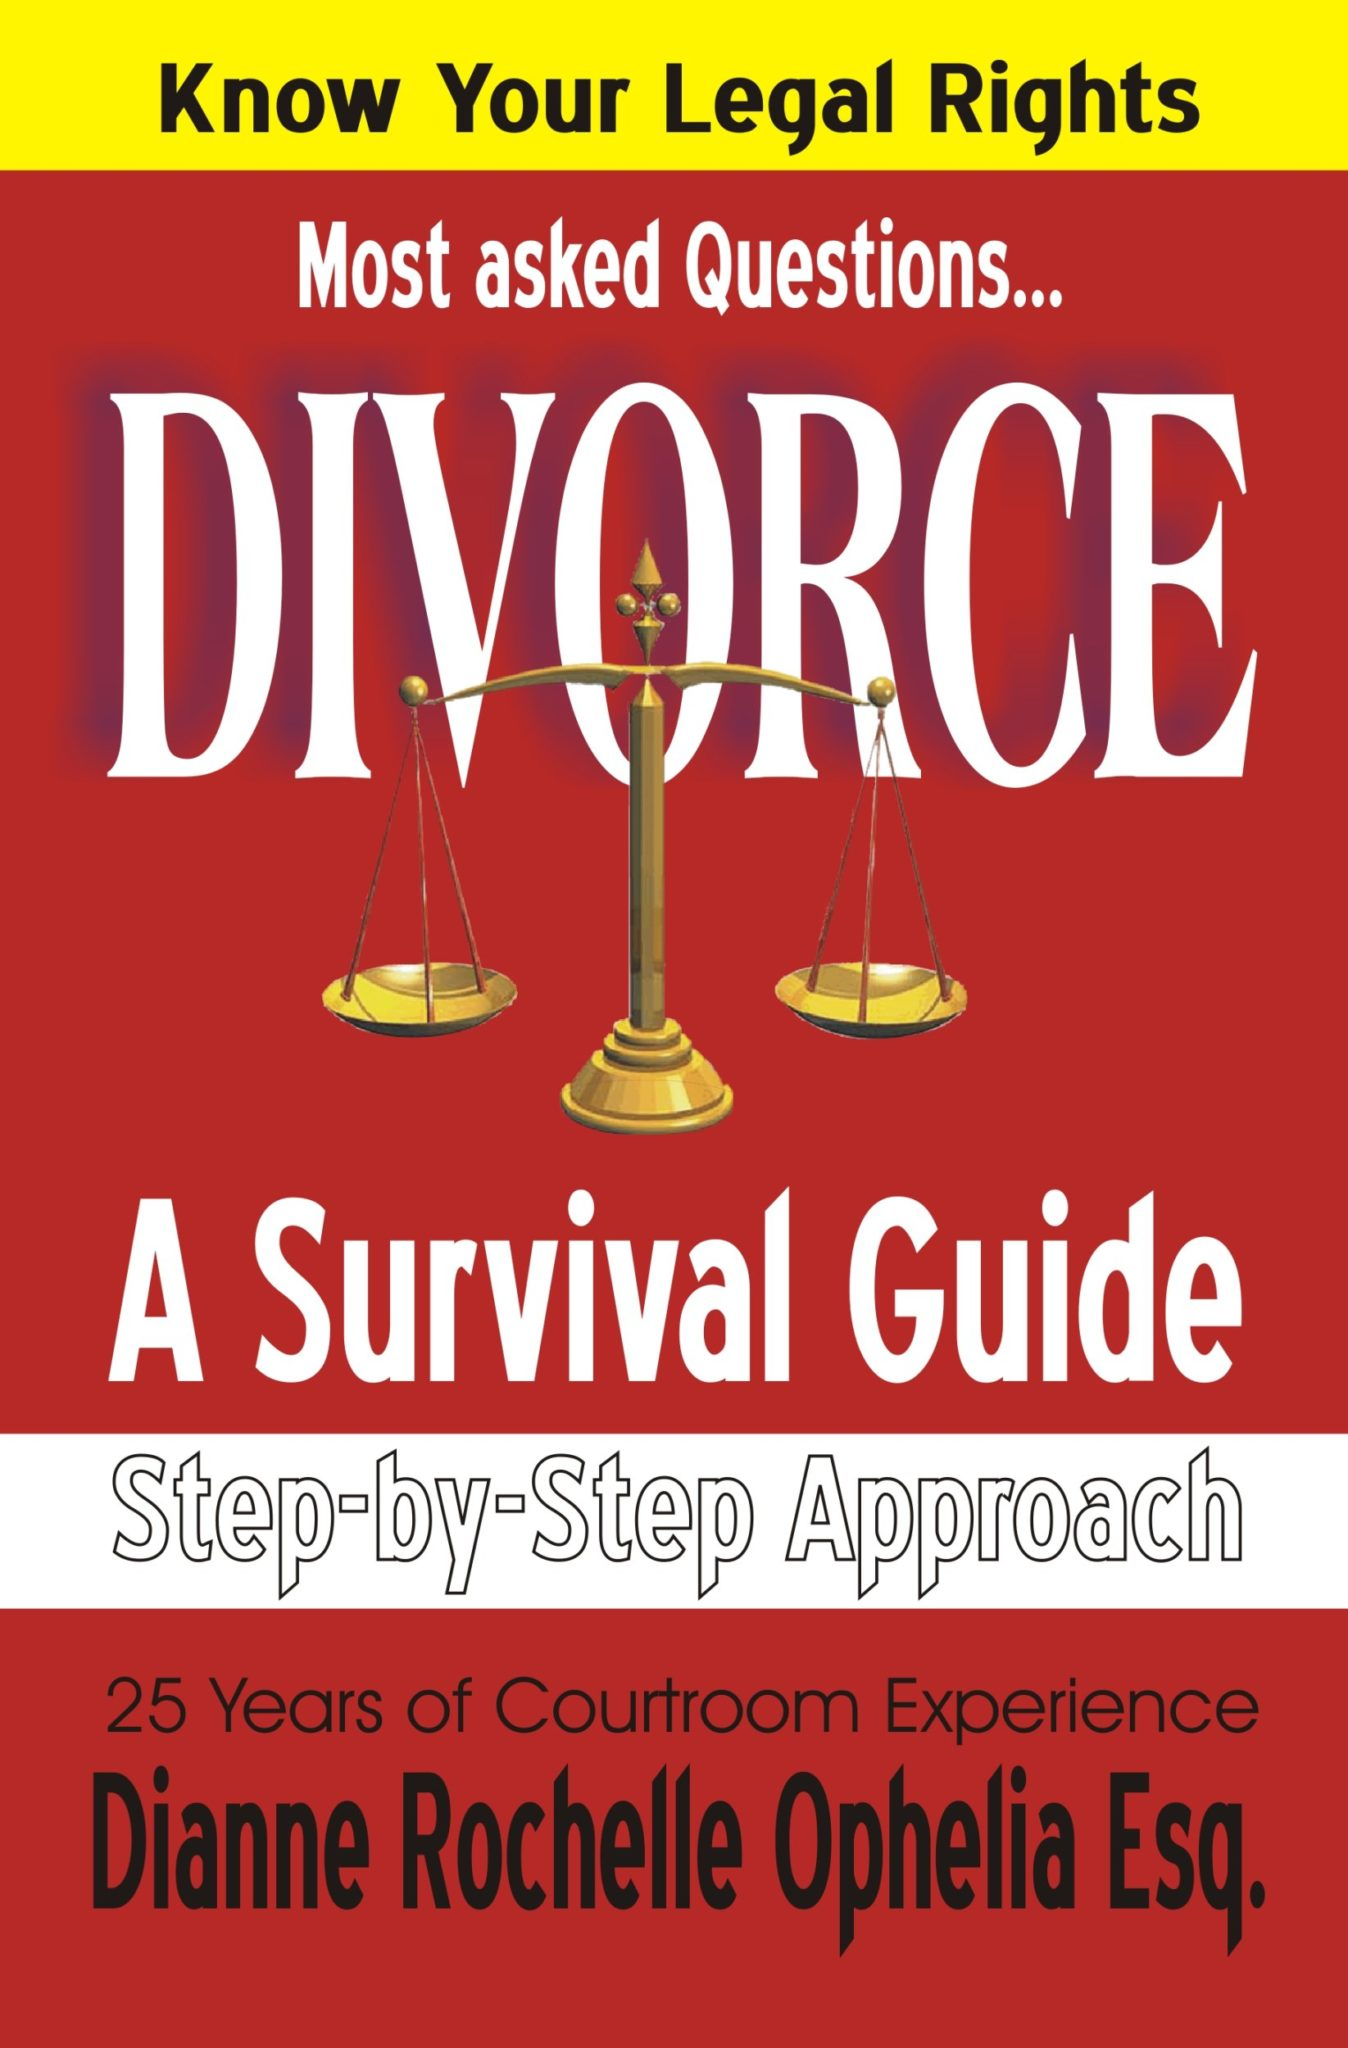 Divorce, A Survival Guide